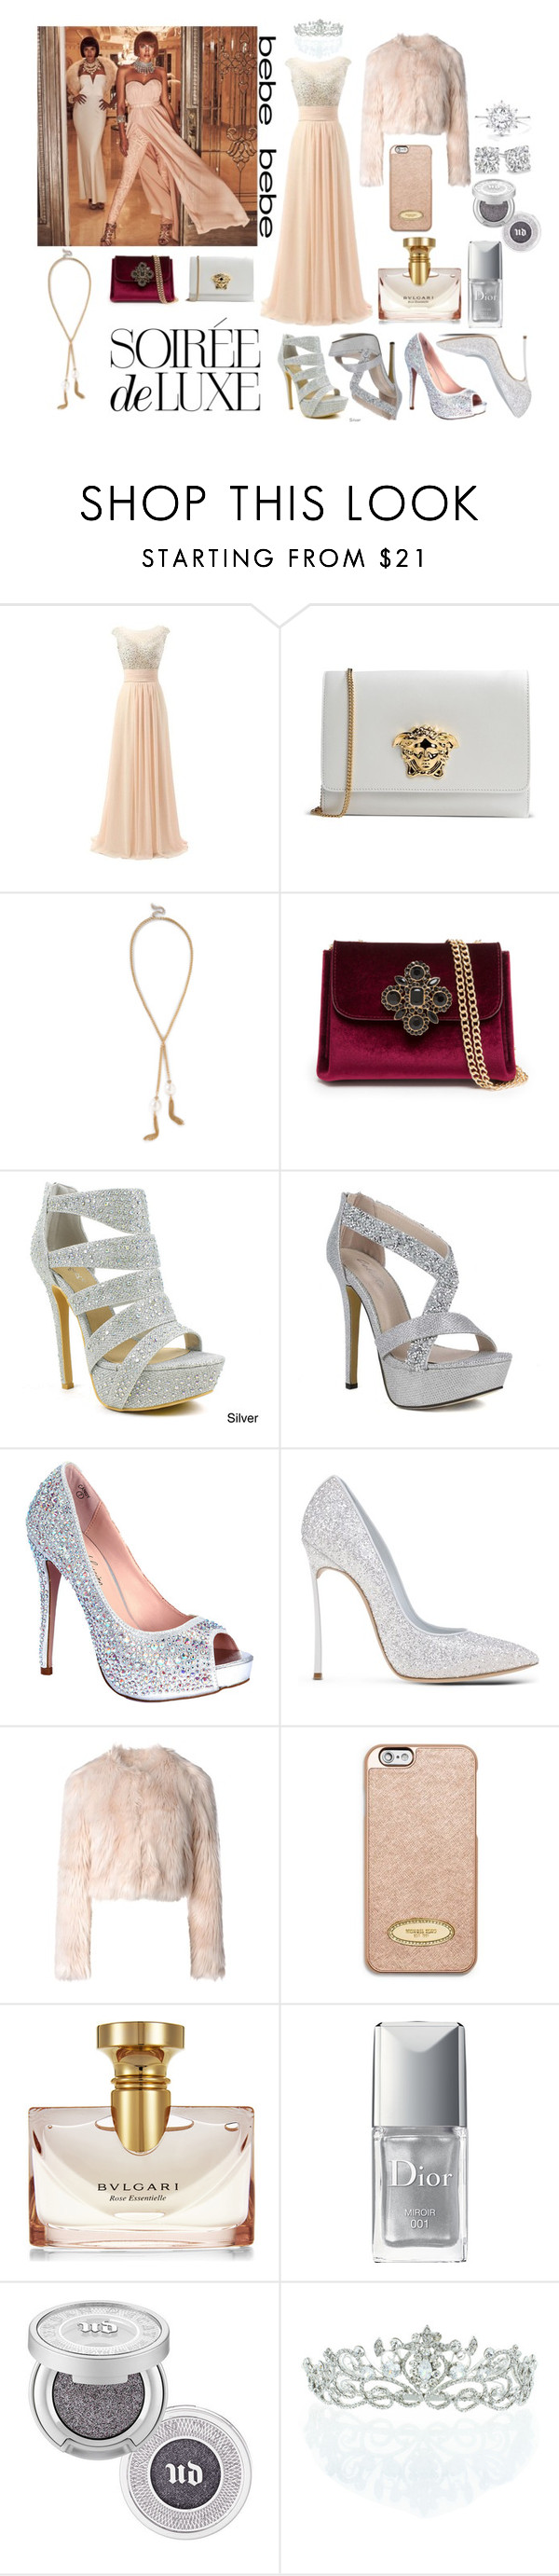 """Soirée de Luxe with bebe Holiday"" by aliss90 ❤ liked on Polyvore featuring Bebe, Versace, Celeste, Lauren Lorraine, Casadei, RED Valentino, MICHAEL Michael Kors, Bulgari, Christian Dior and Urban Decay"